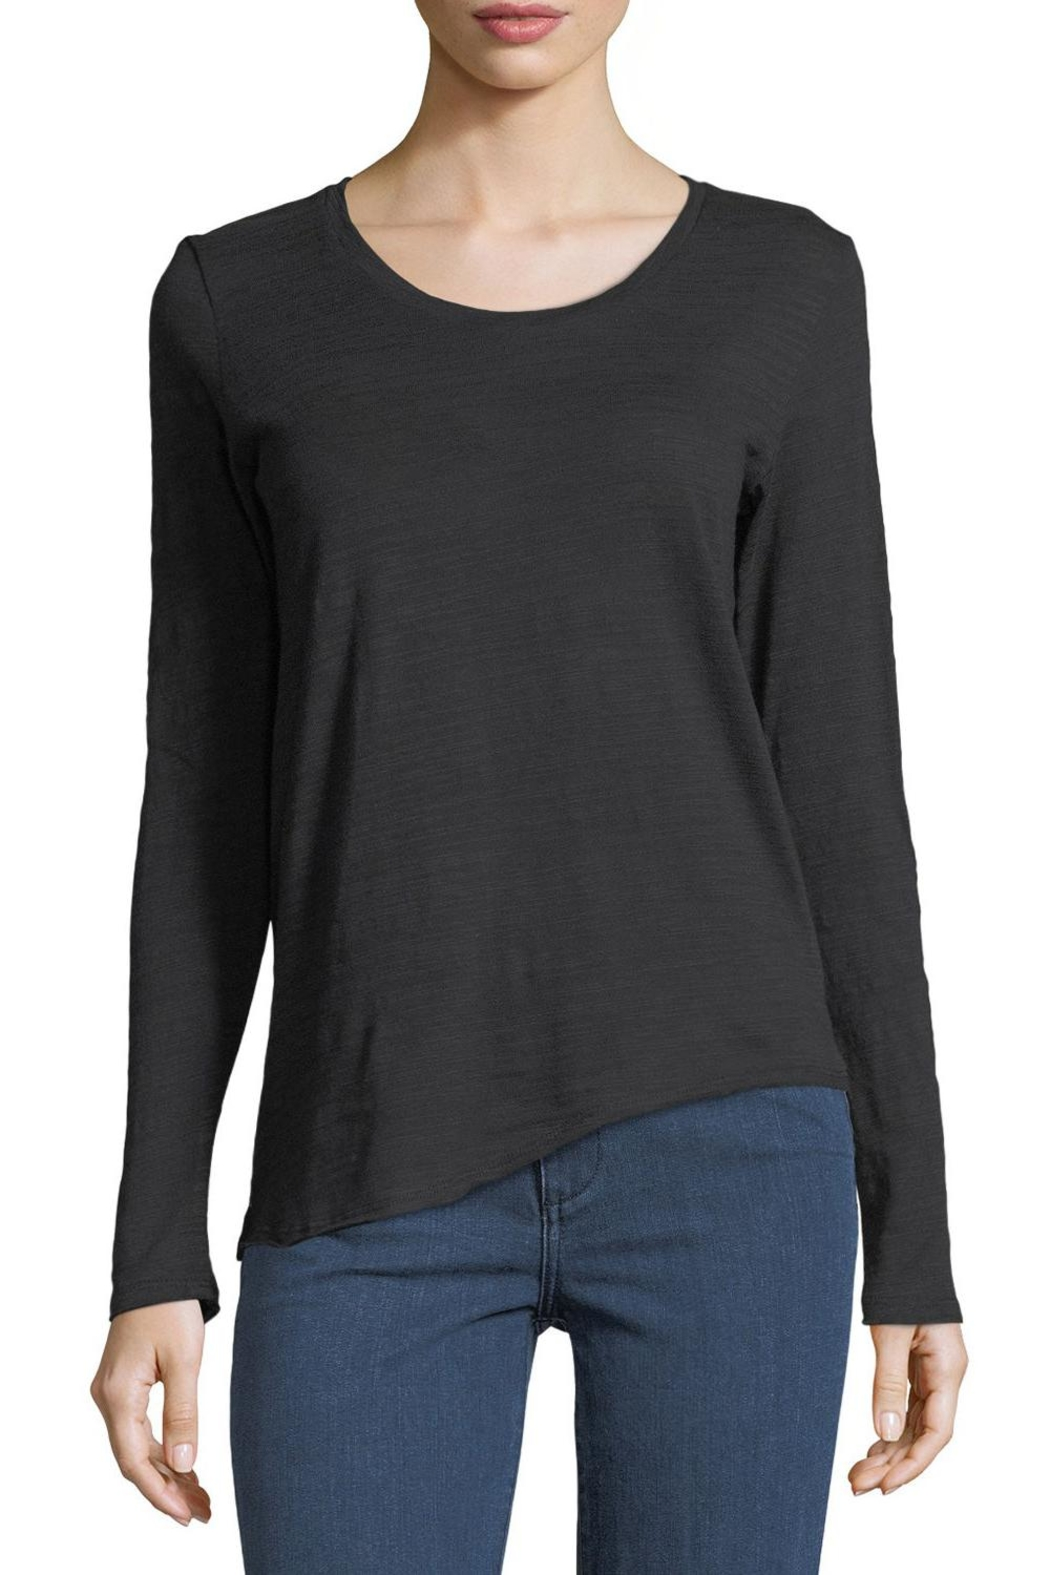 Metric Knits Asymmetric Boat-Neck Tee - Main Image